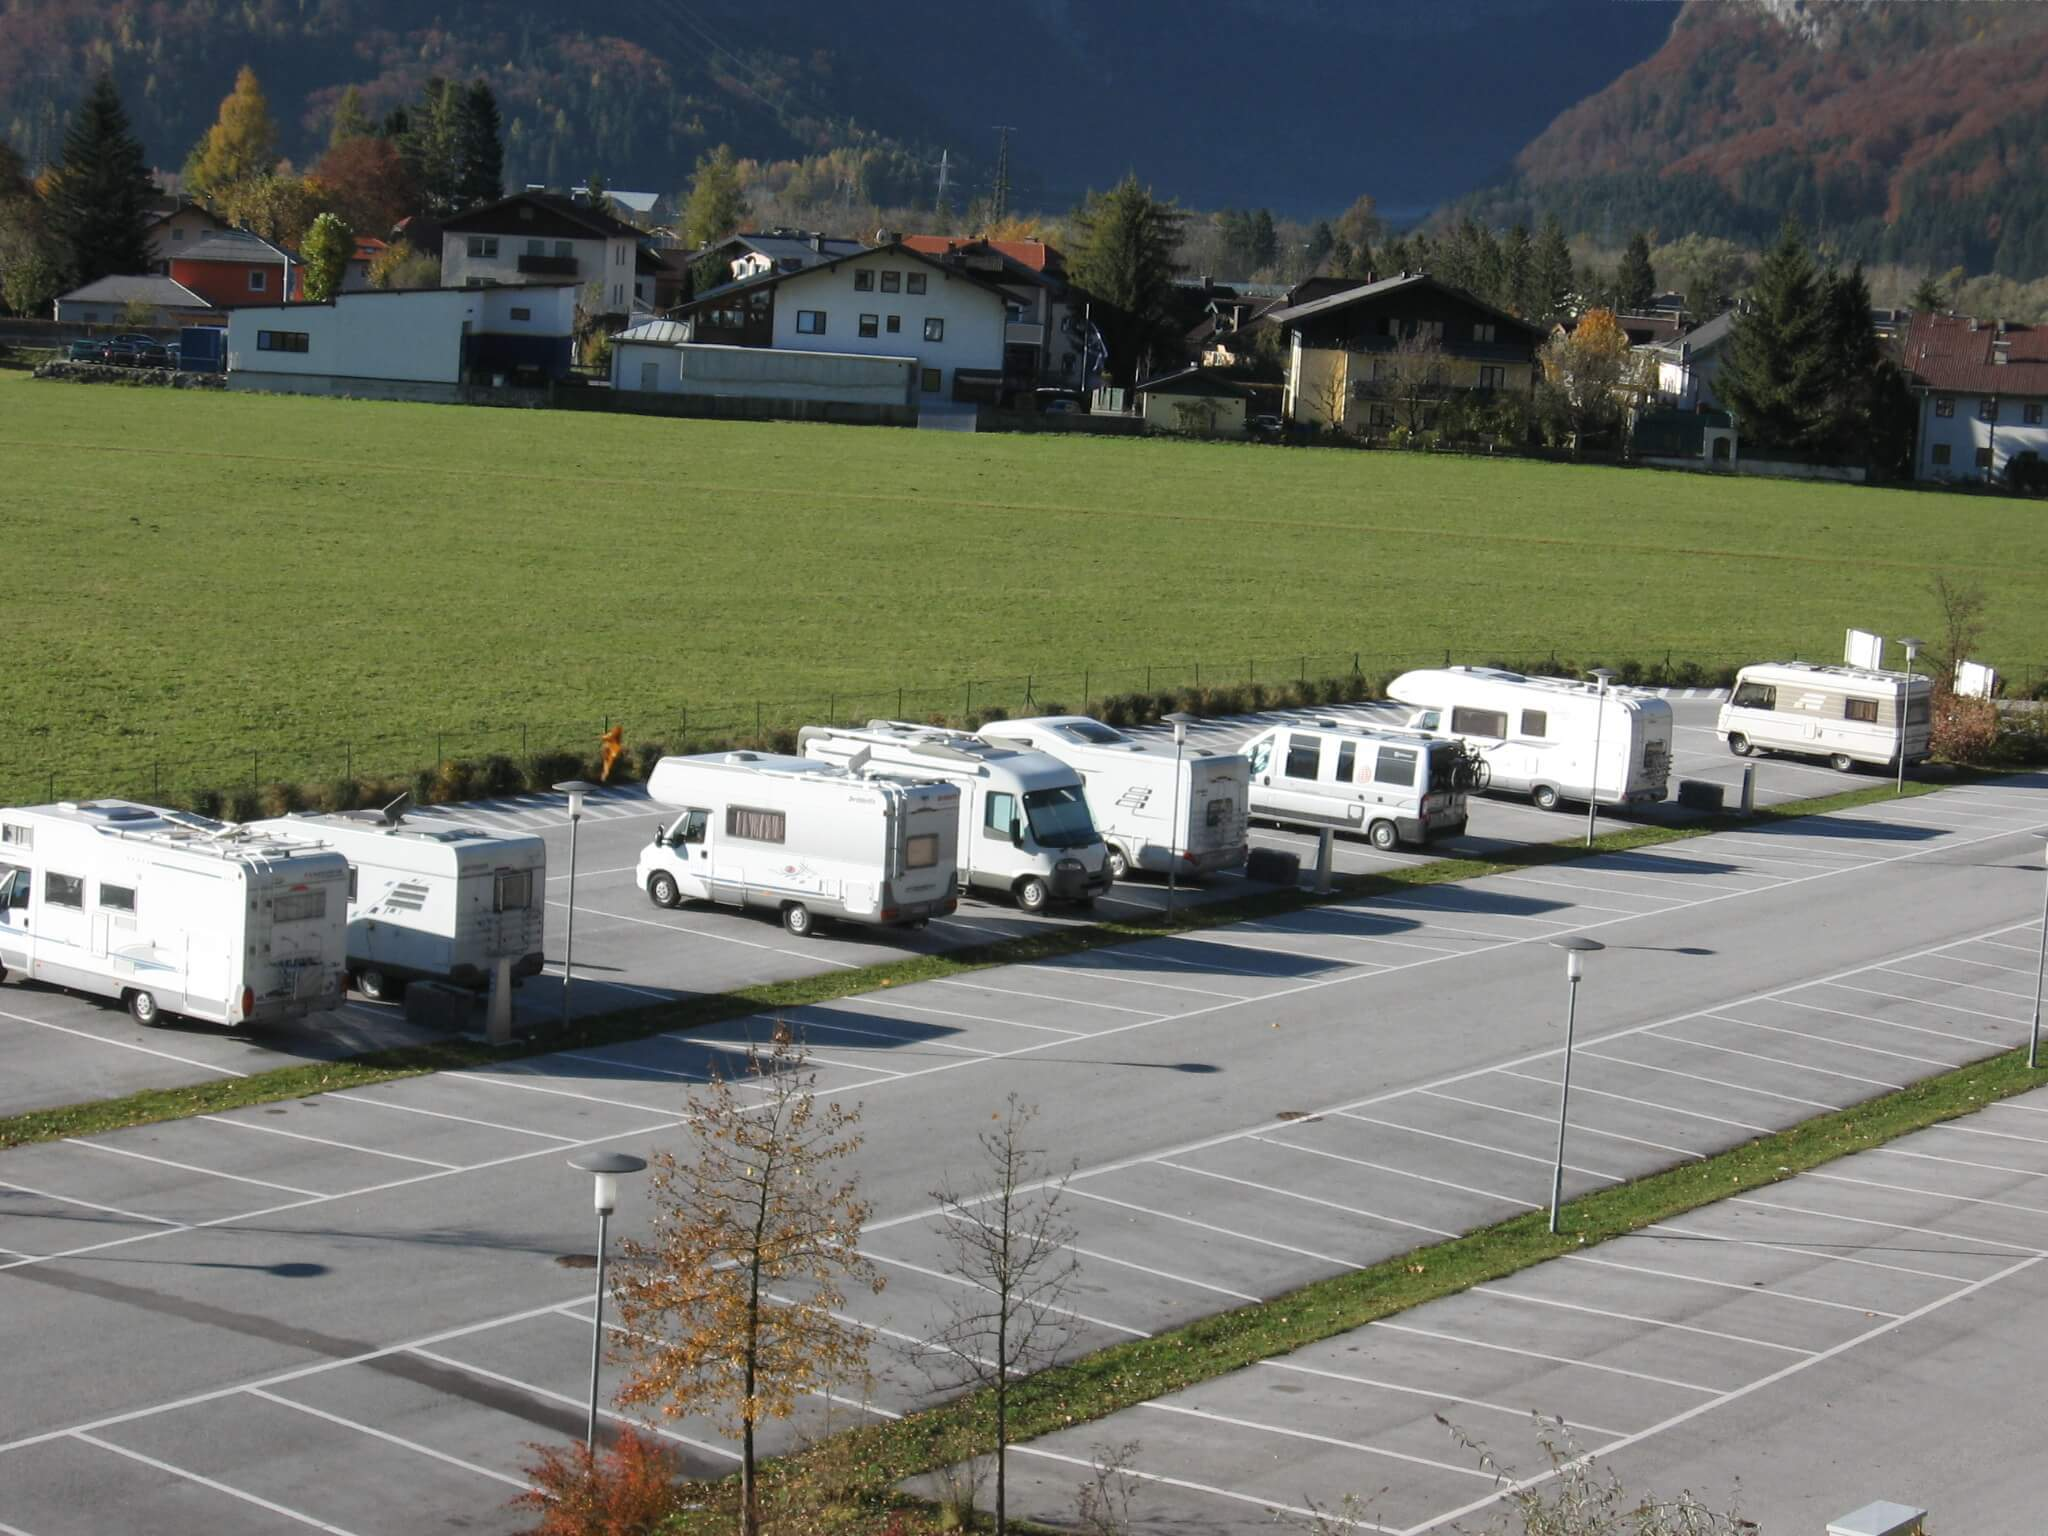 Wohnmobil-Park in Golling